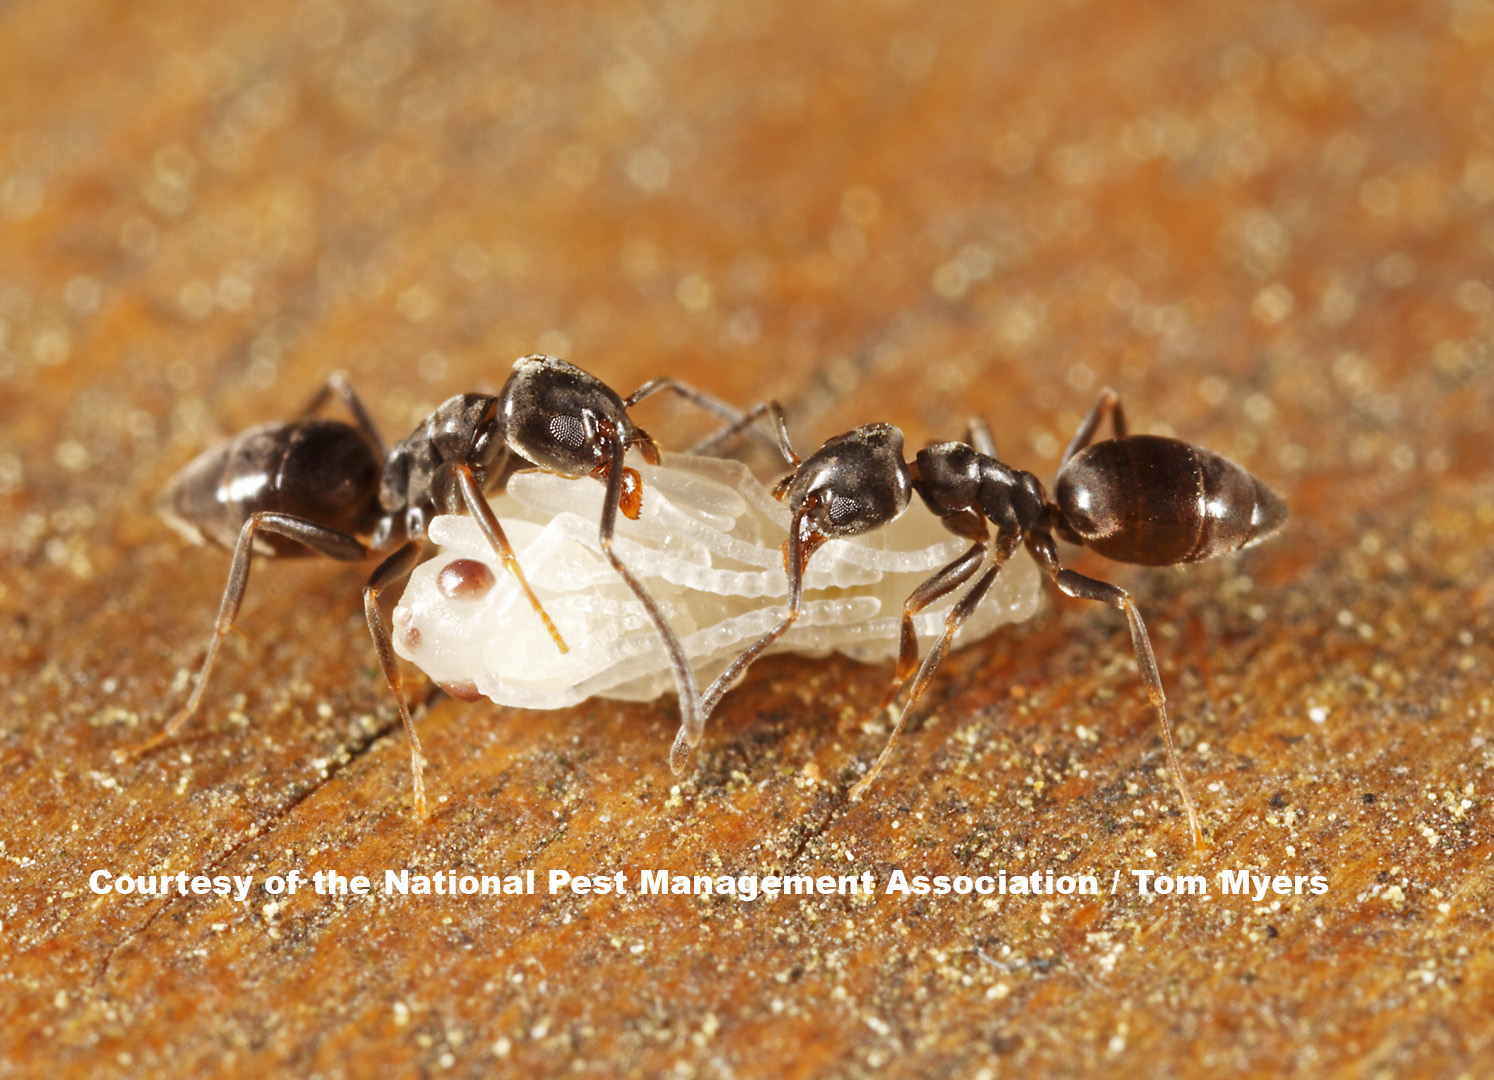 Ants Are The Number One Nuisance Pest In The United States. With More Than  700 Species Occurring In The Country And More Than 20 Types Known To Infest  Homes ...